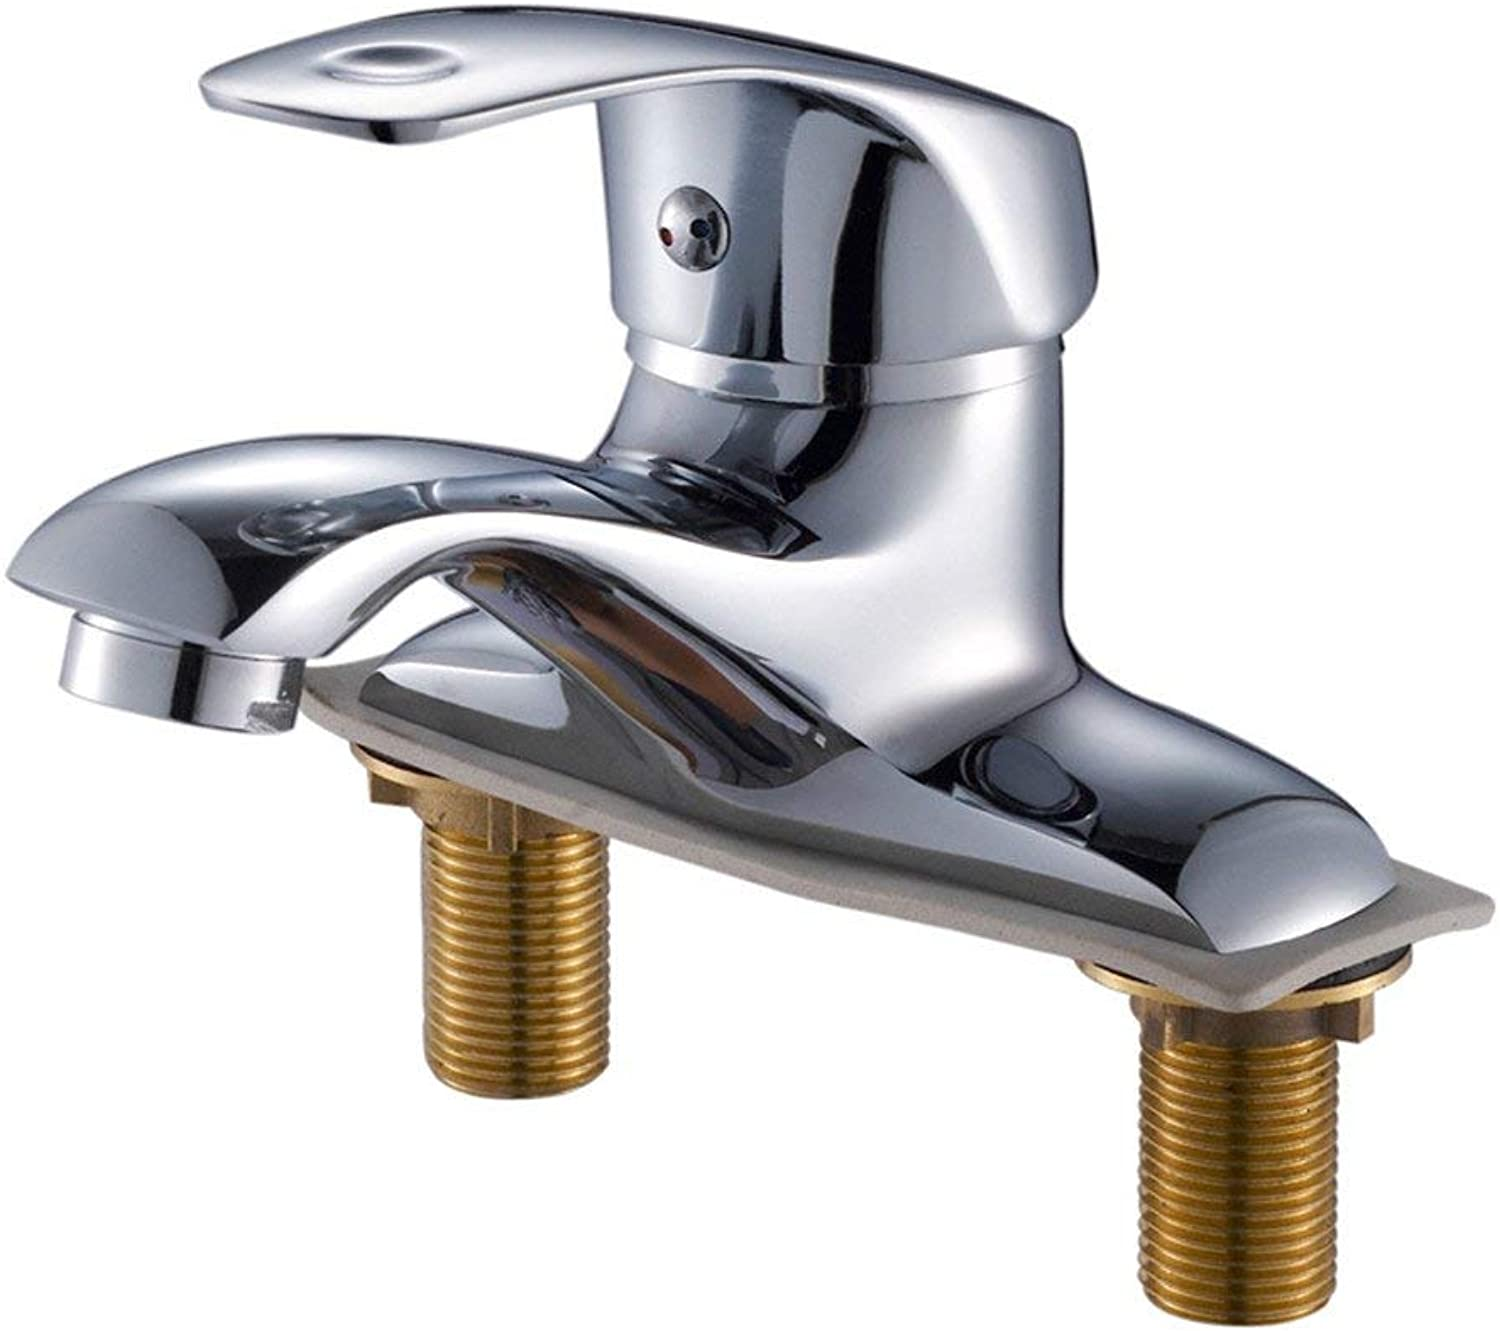 SEEKSUNG Water-taps Single Double Hole?Three Hole Basin?Two?hot and Cold?Copper?wash Basin?Bathroom Cabinet?Faucet Faucets